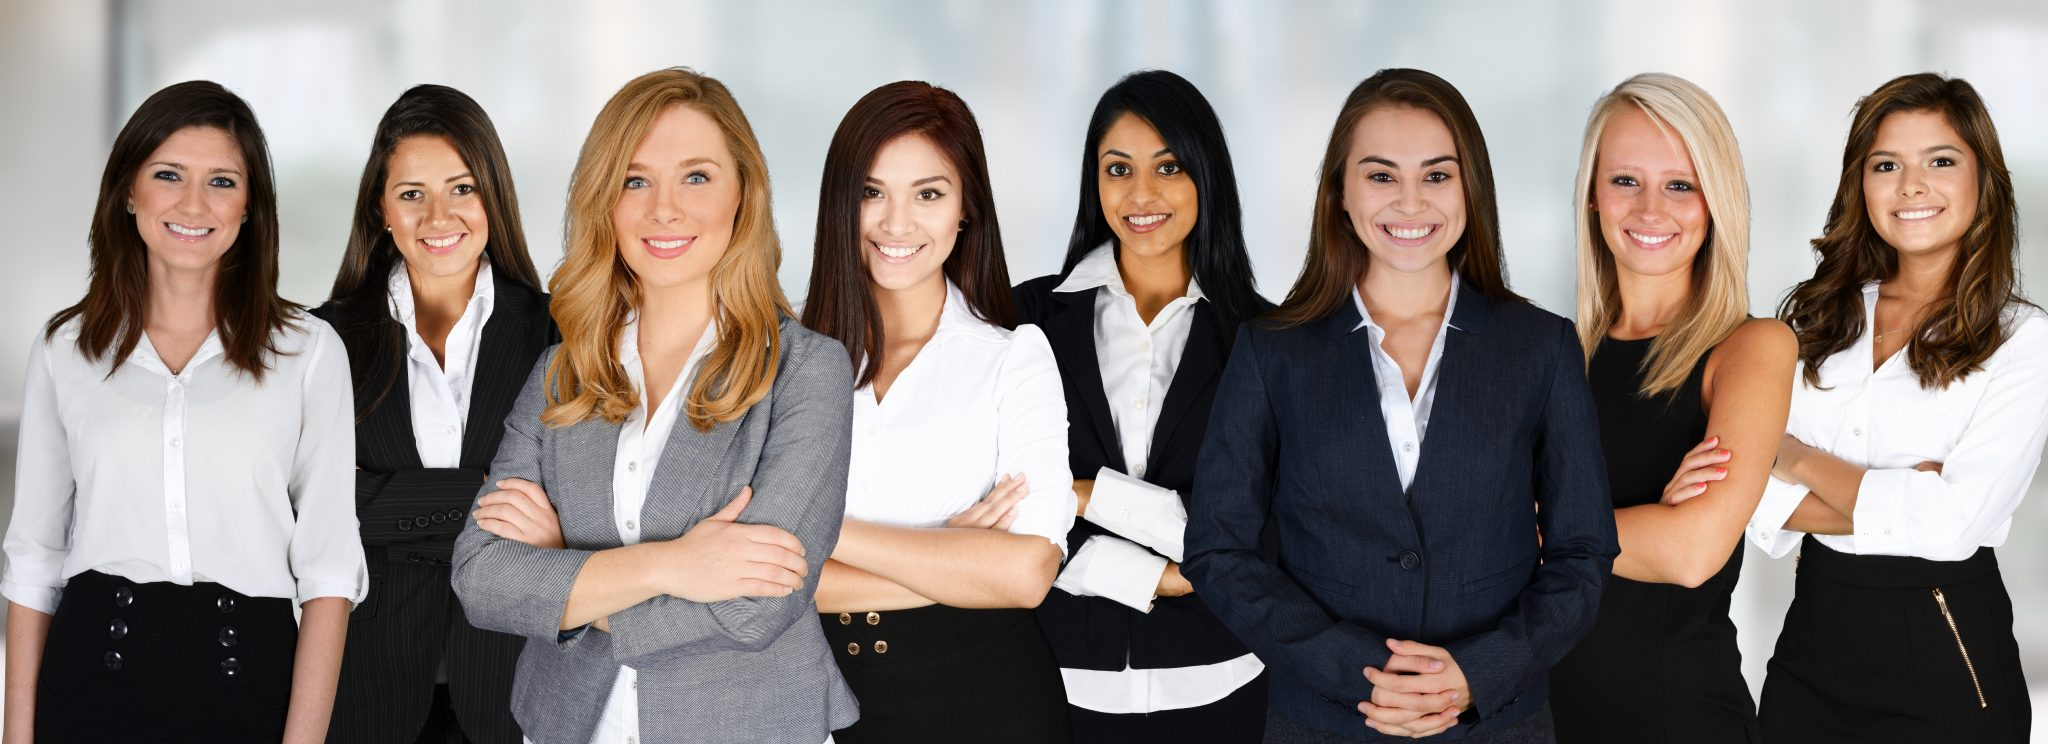 Encouraging women into franchising - women in business suits